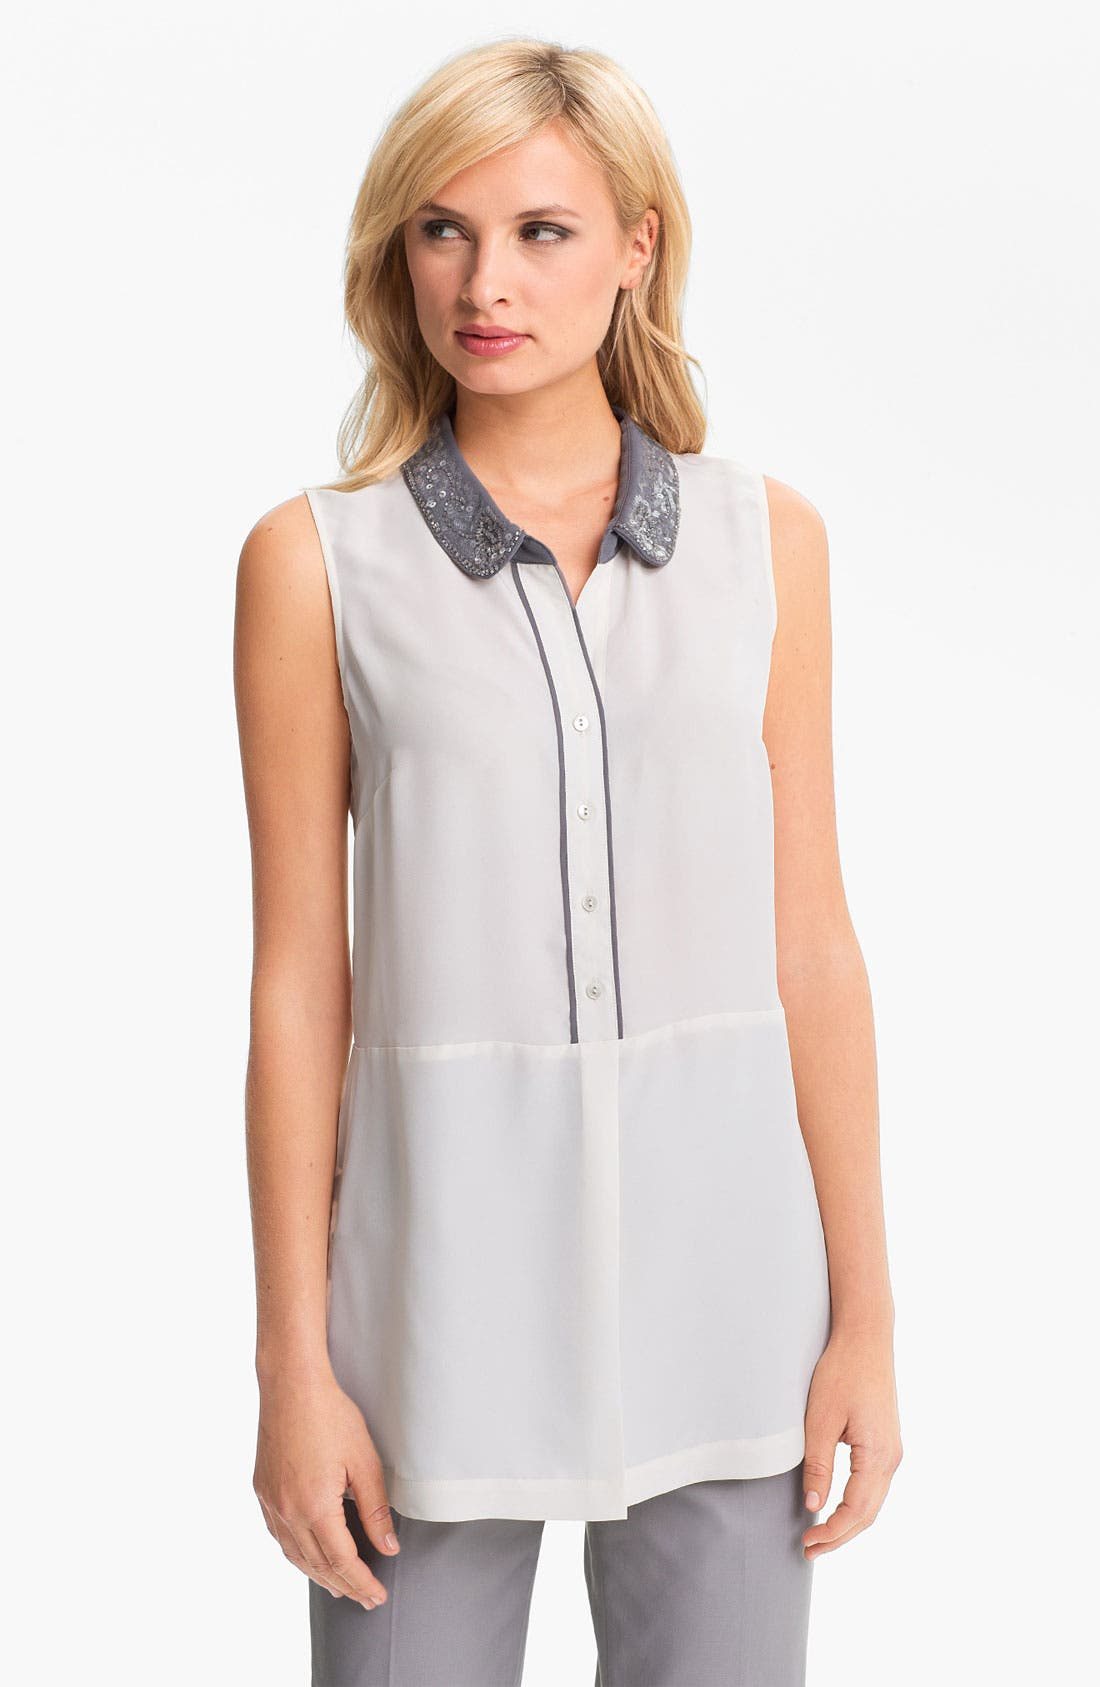 Main Image - Nic + Zoe Sequin Collar Sleeveless Blouse (Petite)